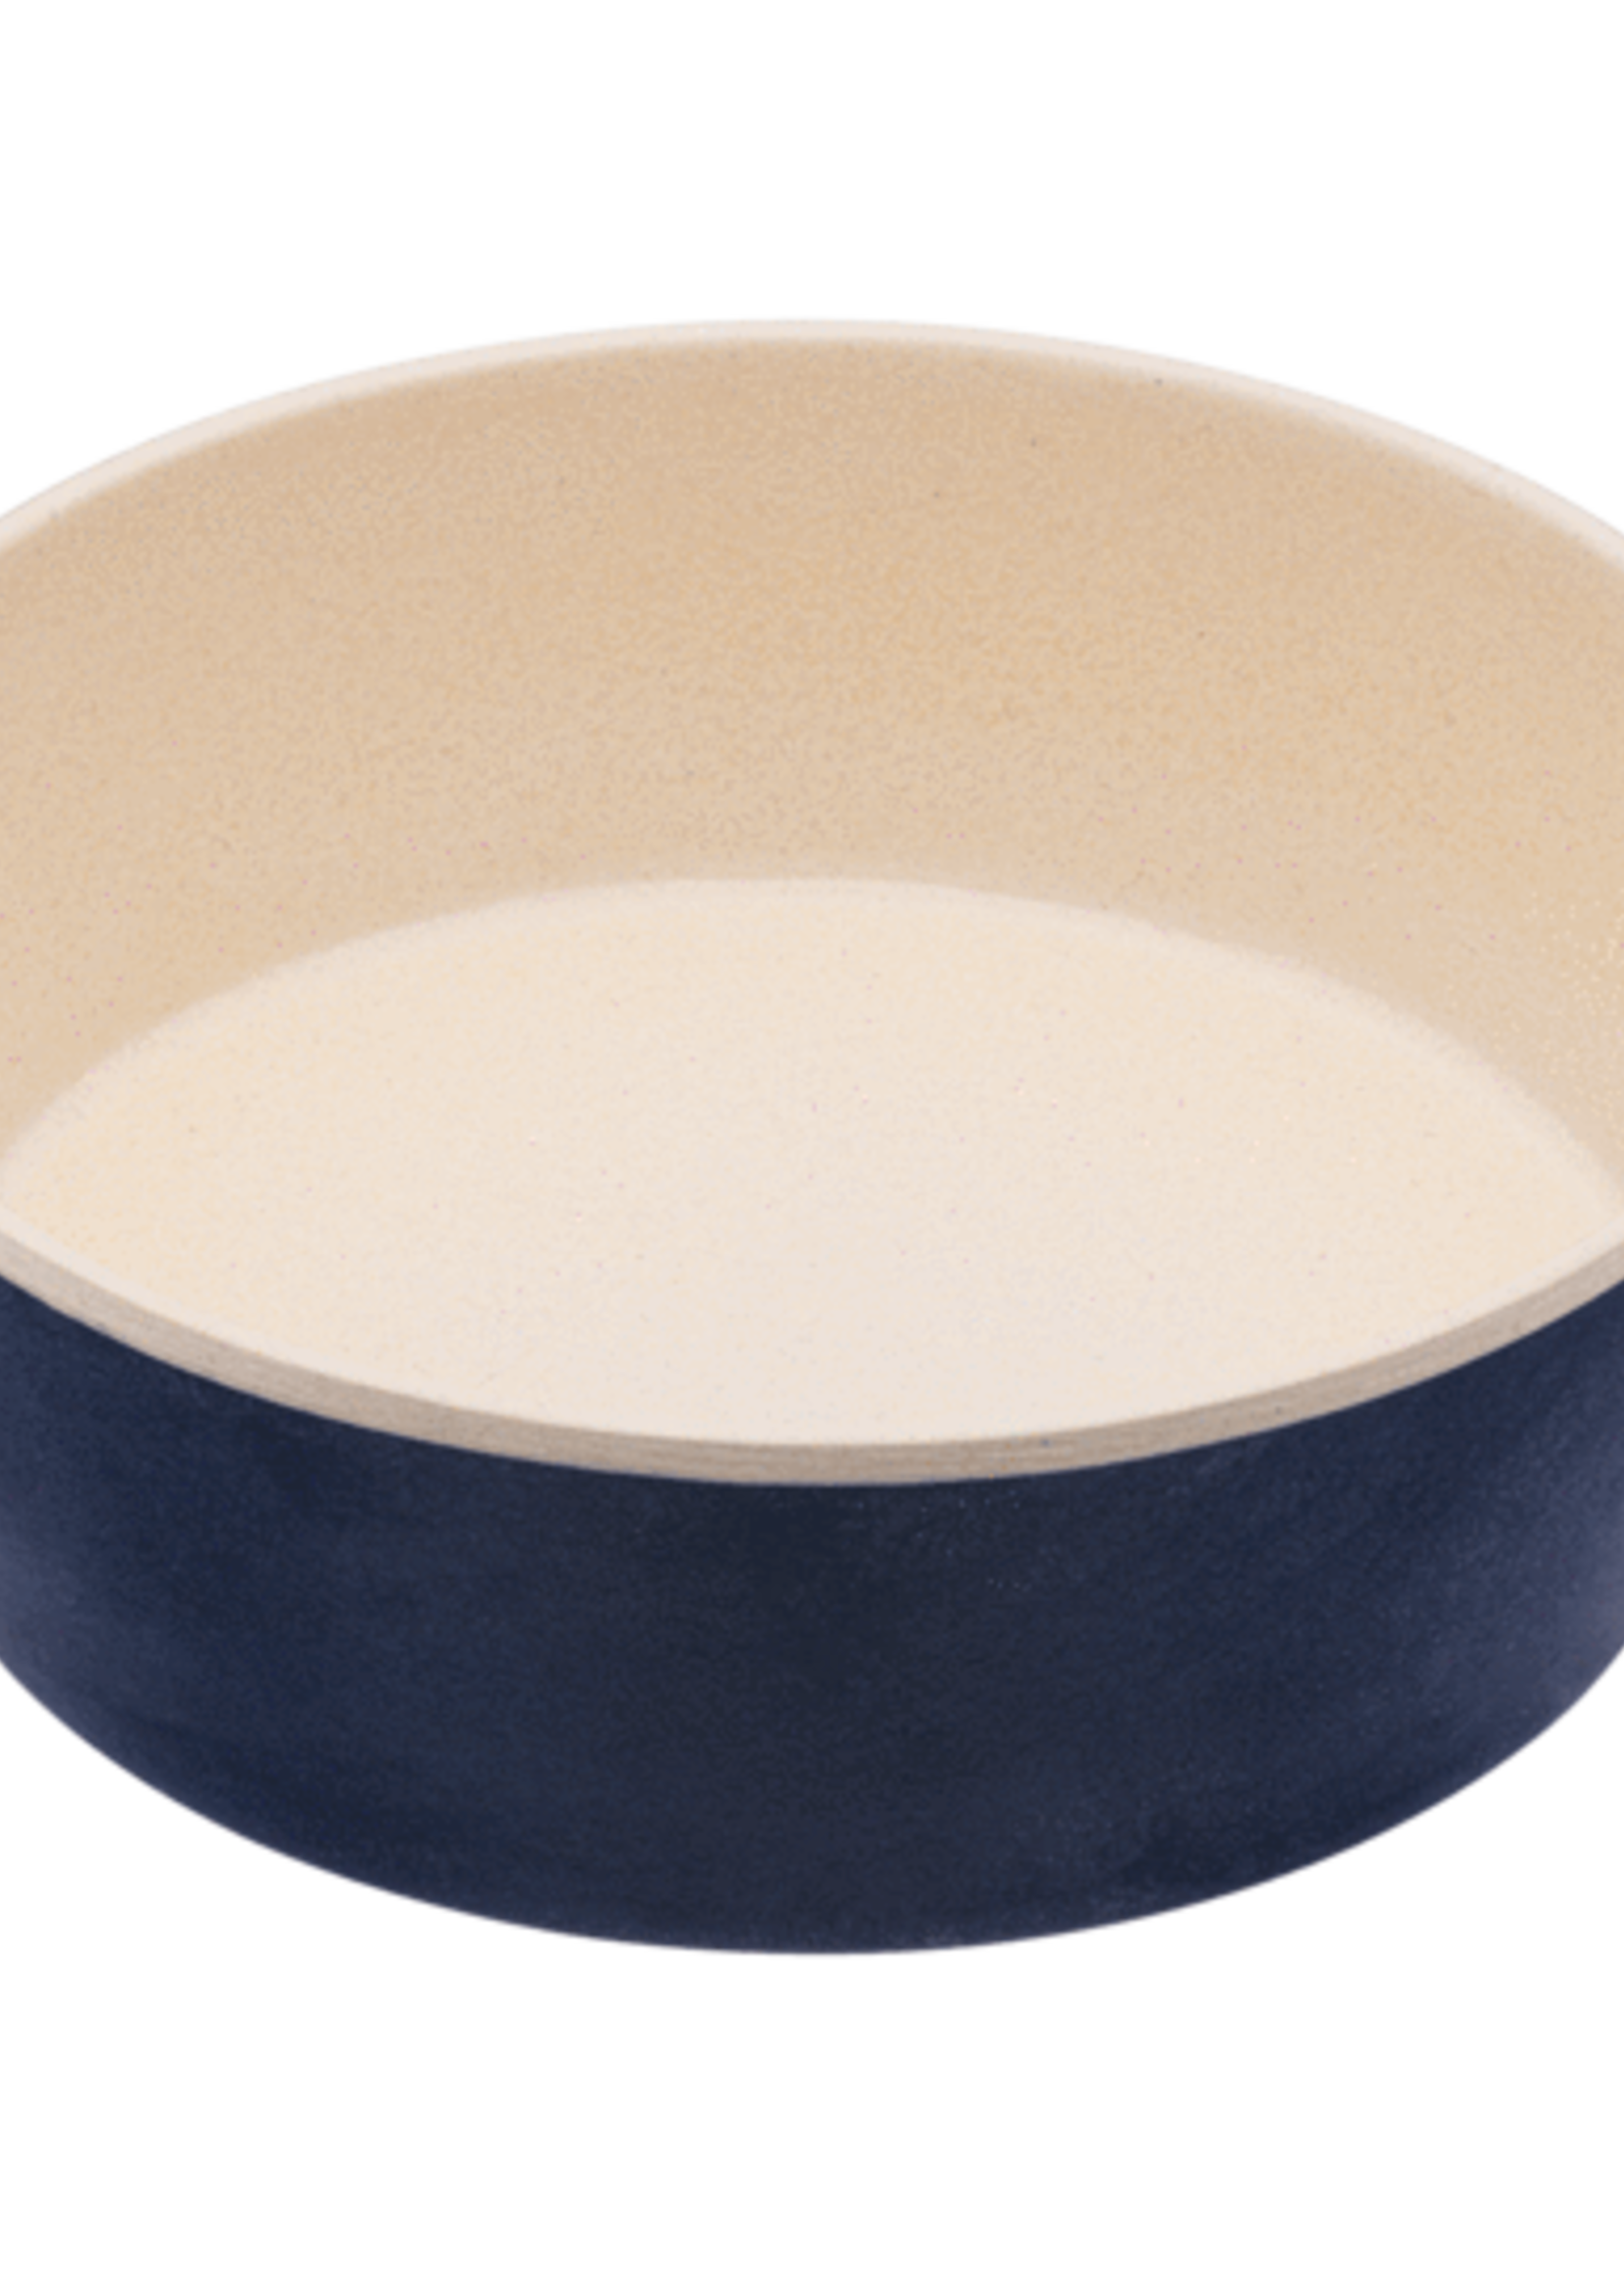 Beco Pets Beco Bowl Small Navy